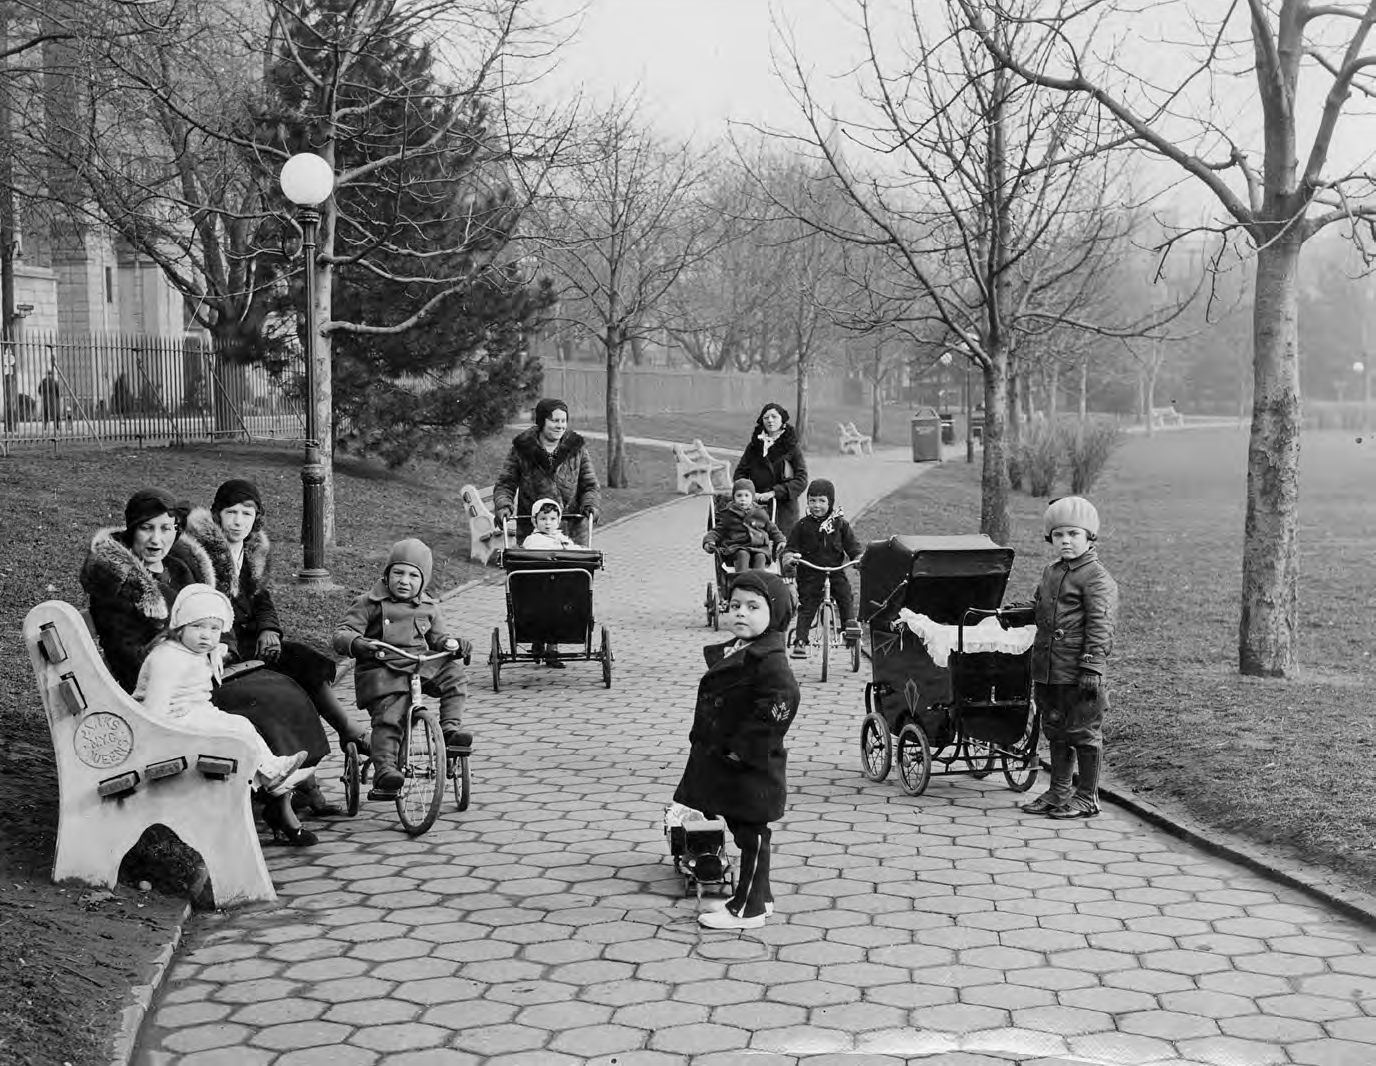 Rufus King Park in 1933.